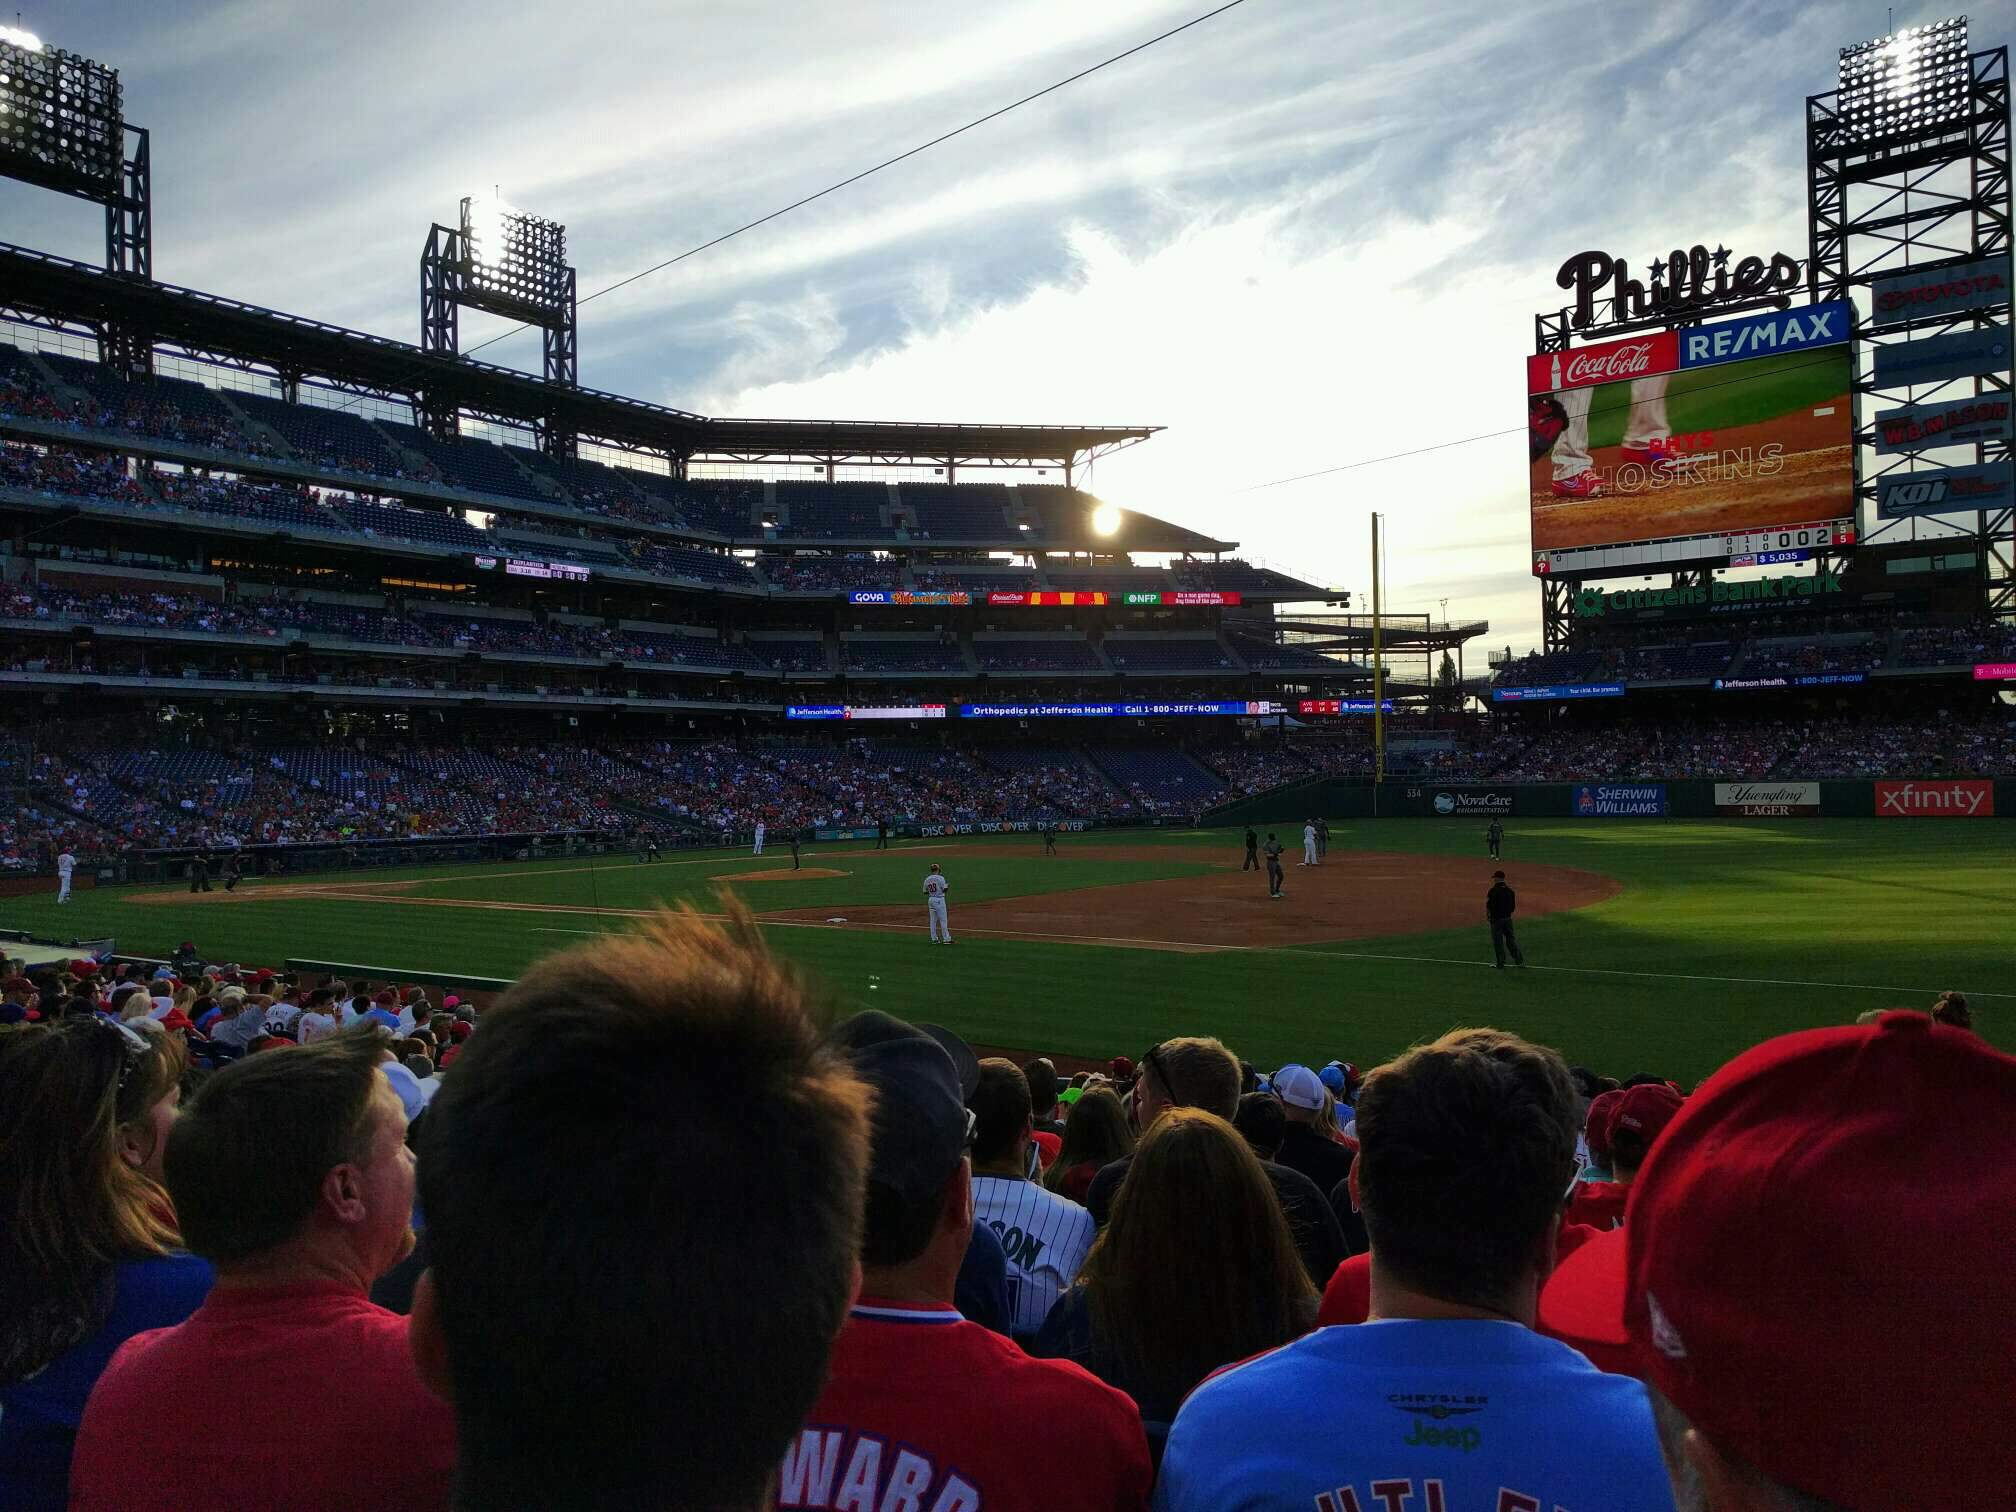 Citizens Bank Park Section 113 Row 17 Seat 5